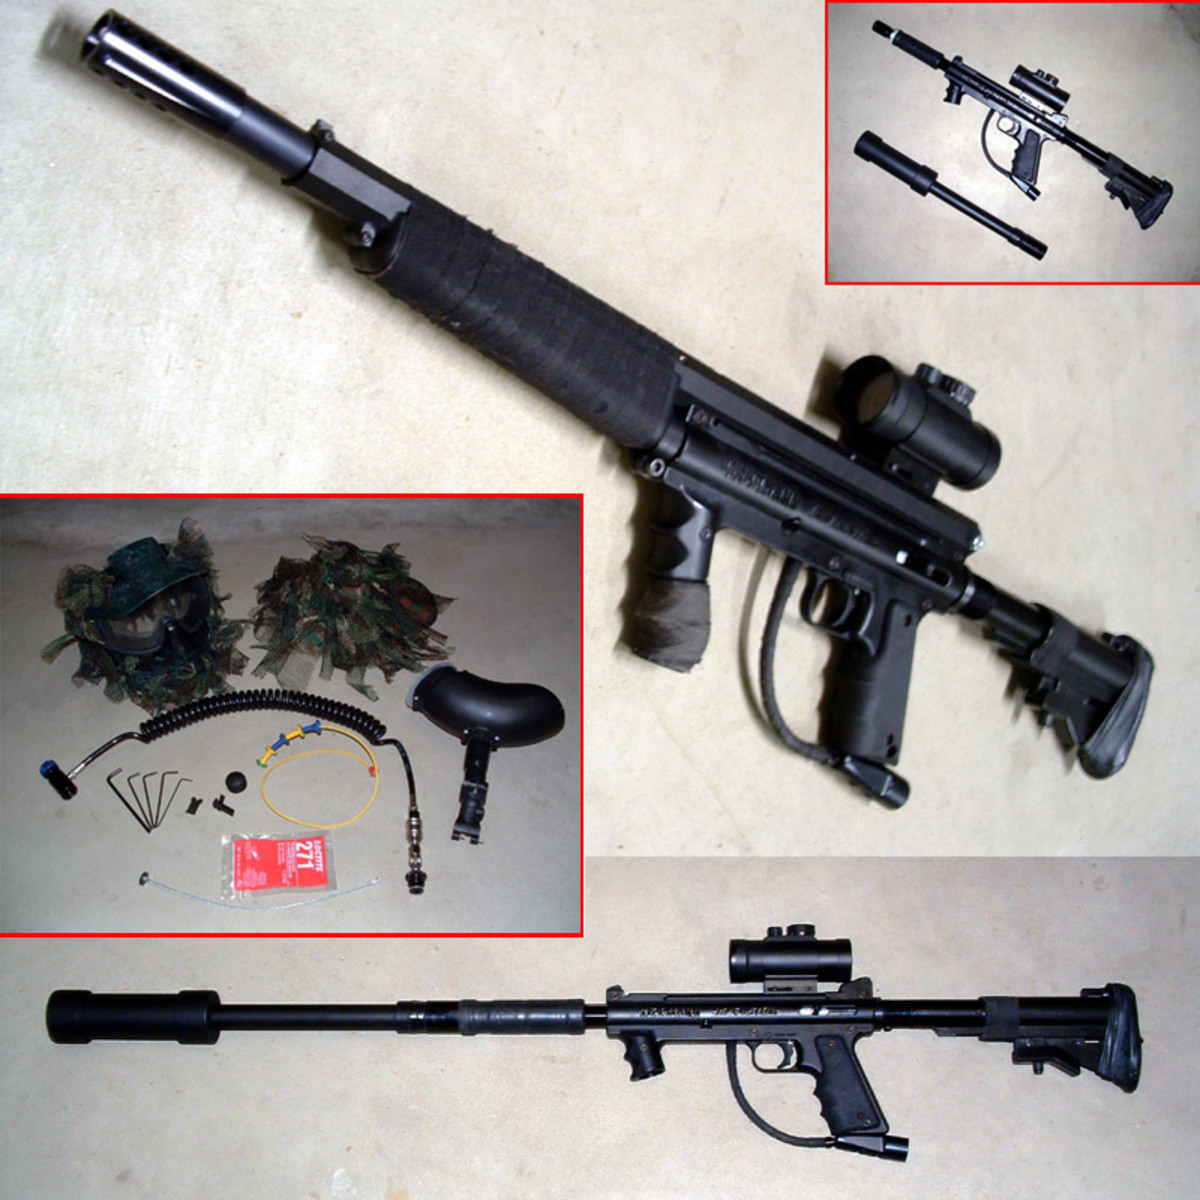 The Tipmann Sniper Rifle is pretty sweet, makes the best paintball gun!